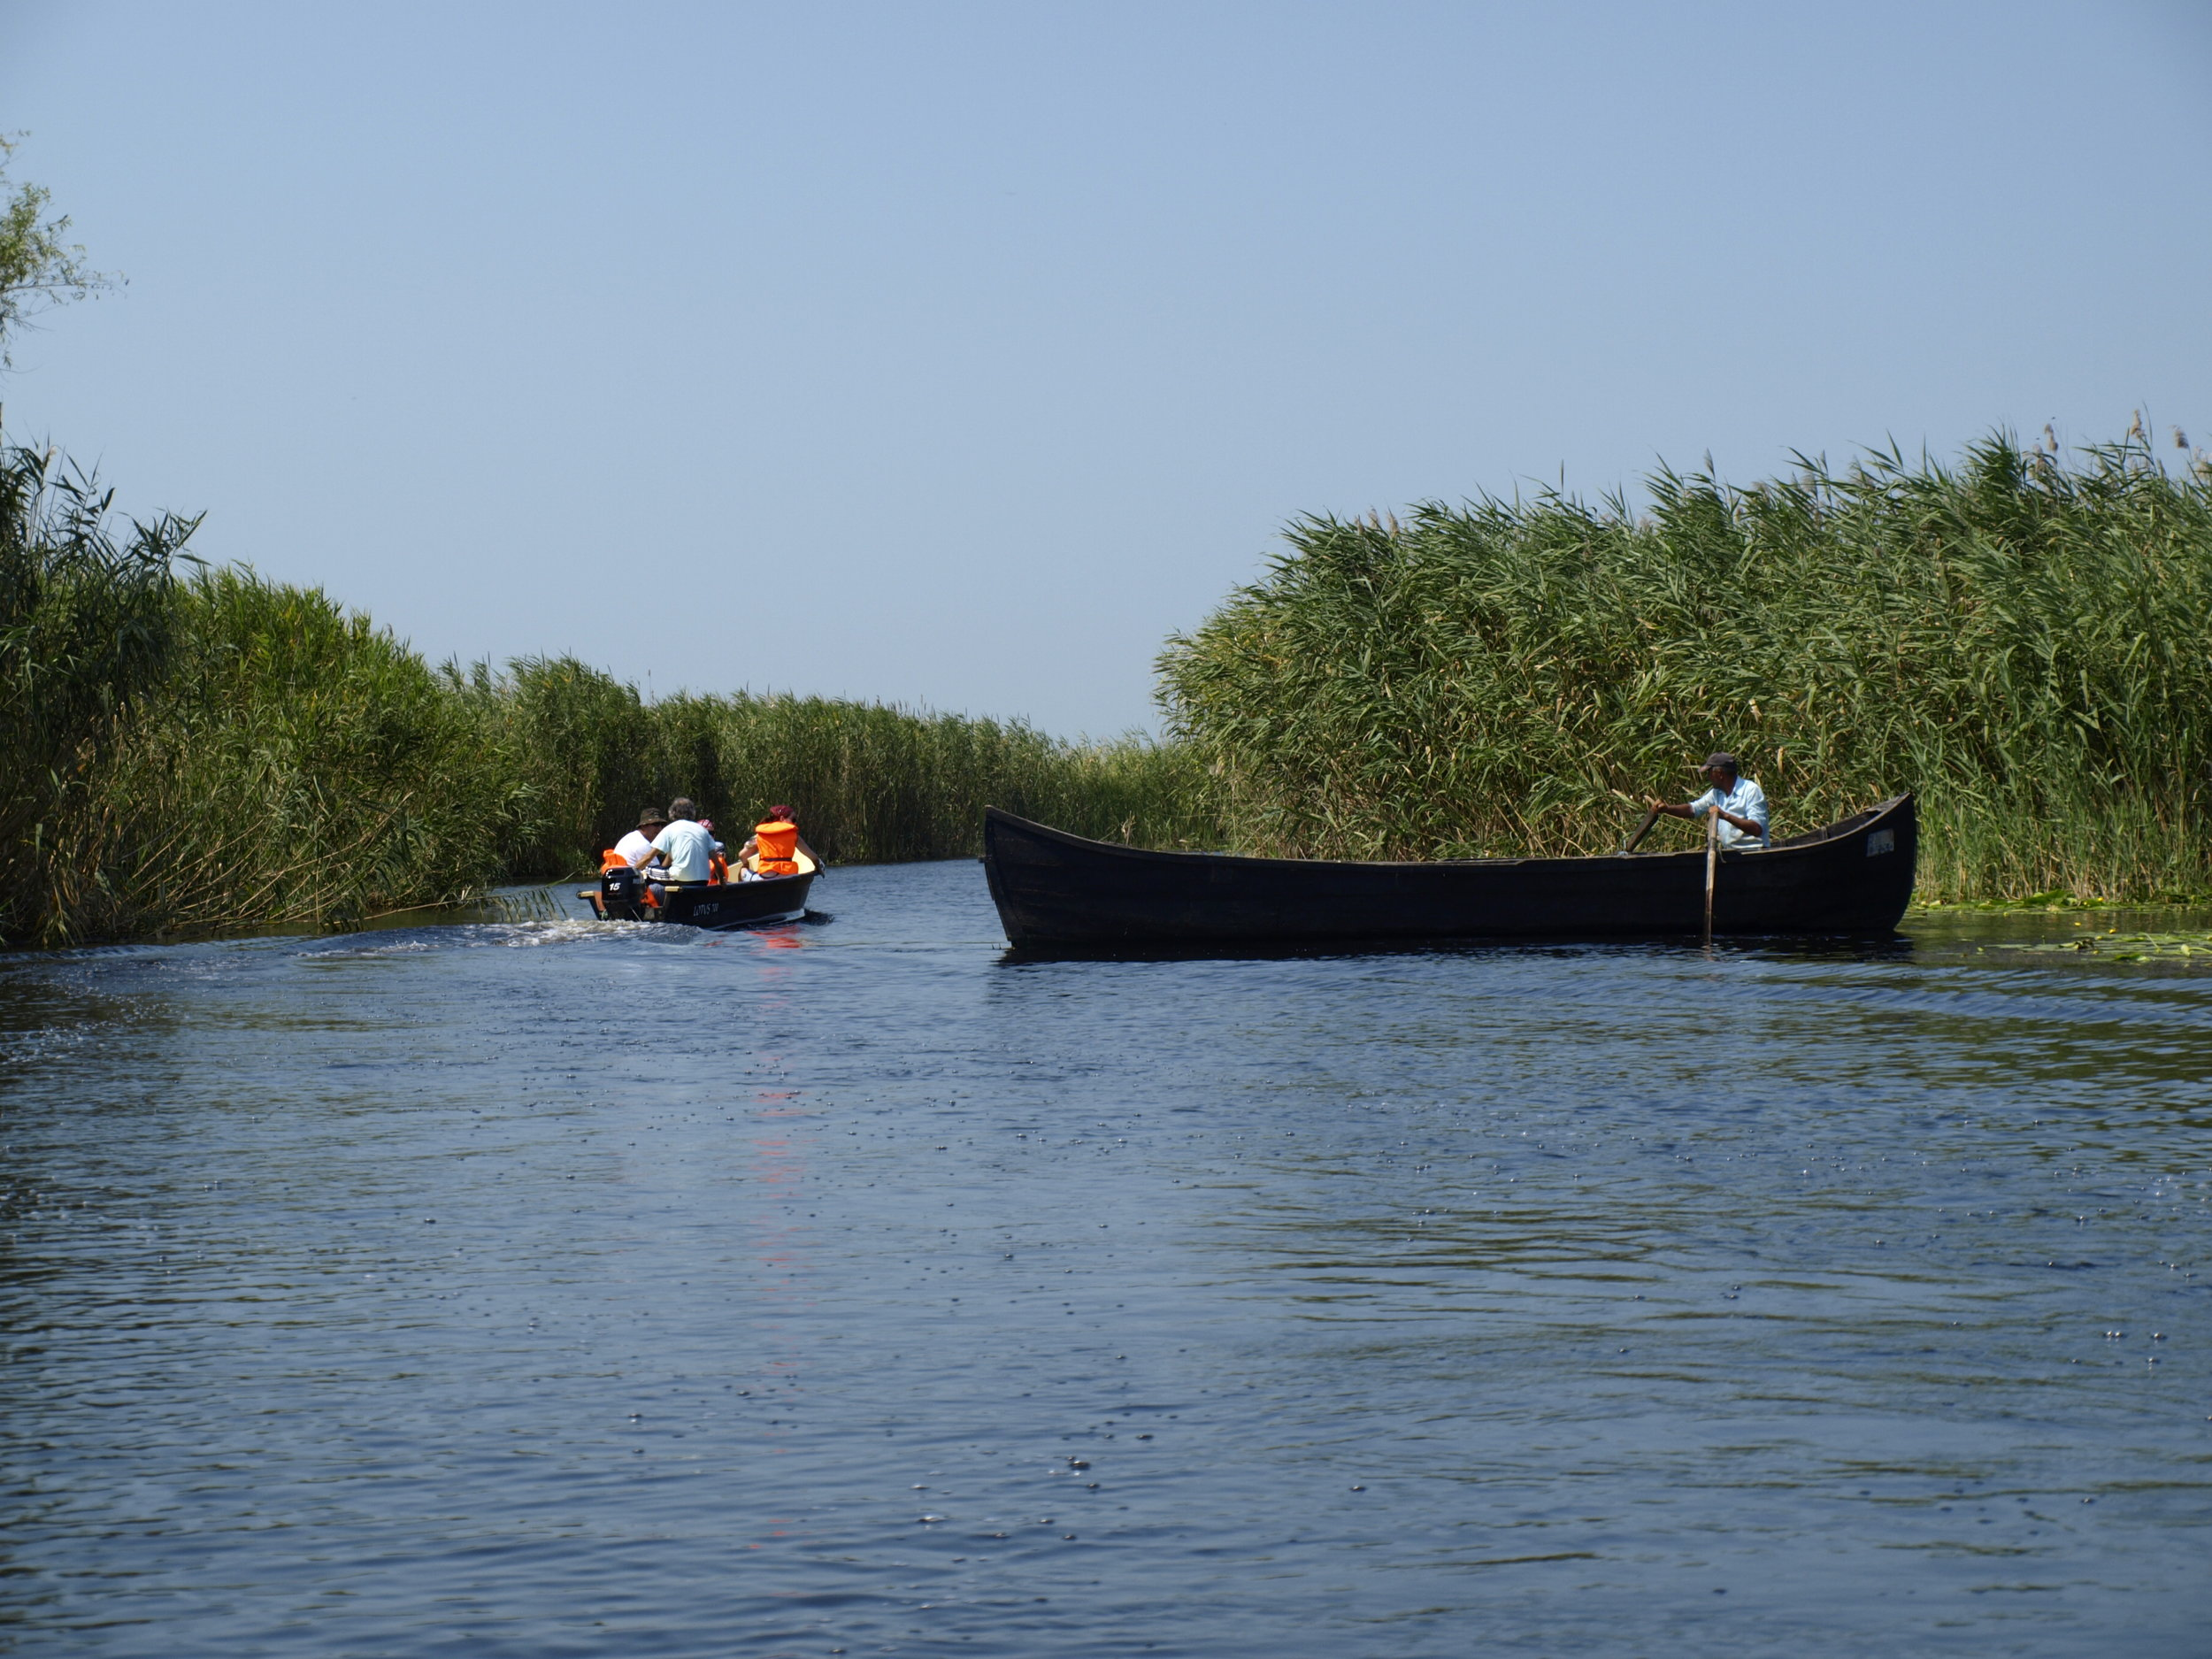 Boat trips in the wild areas of the Delta - Chilia Veche is the most important starting point for any major expedition in the North side of the Delta. Laying at a short distance to the village by boat, the impressive Letea Natural Reserve is waiting for you to discover its amazing tropical looks. Prepare for a walk along trees more than 500 years old, Mediterranean plants surrounded by sand dunes and home to a real paradise of tortoises, lizards and wild horses. Access to Letea Forest is permitted only with a guide on designated routes.